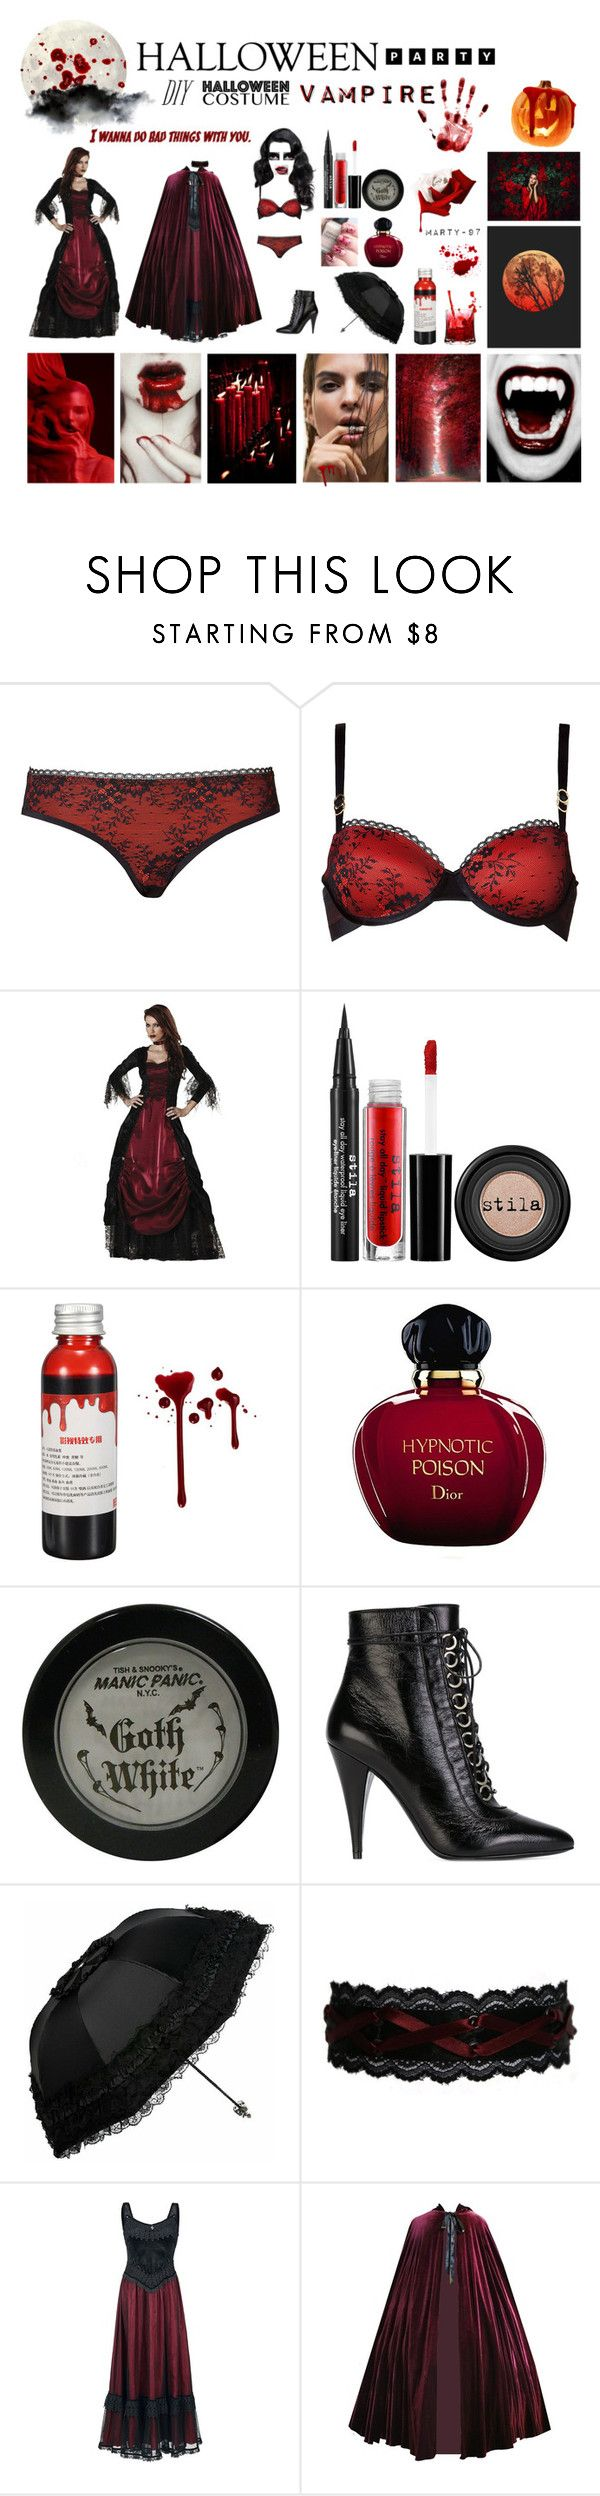 Halloween Party: Vampire!! by marty-97 on Polyvore featuring moda, STELLA McCARTNEY, Yves Saint Laurent, Manic Panic NYC, Christian Dior, Stila and Ødd.